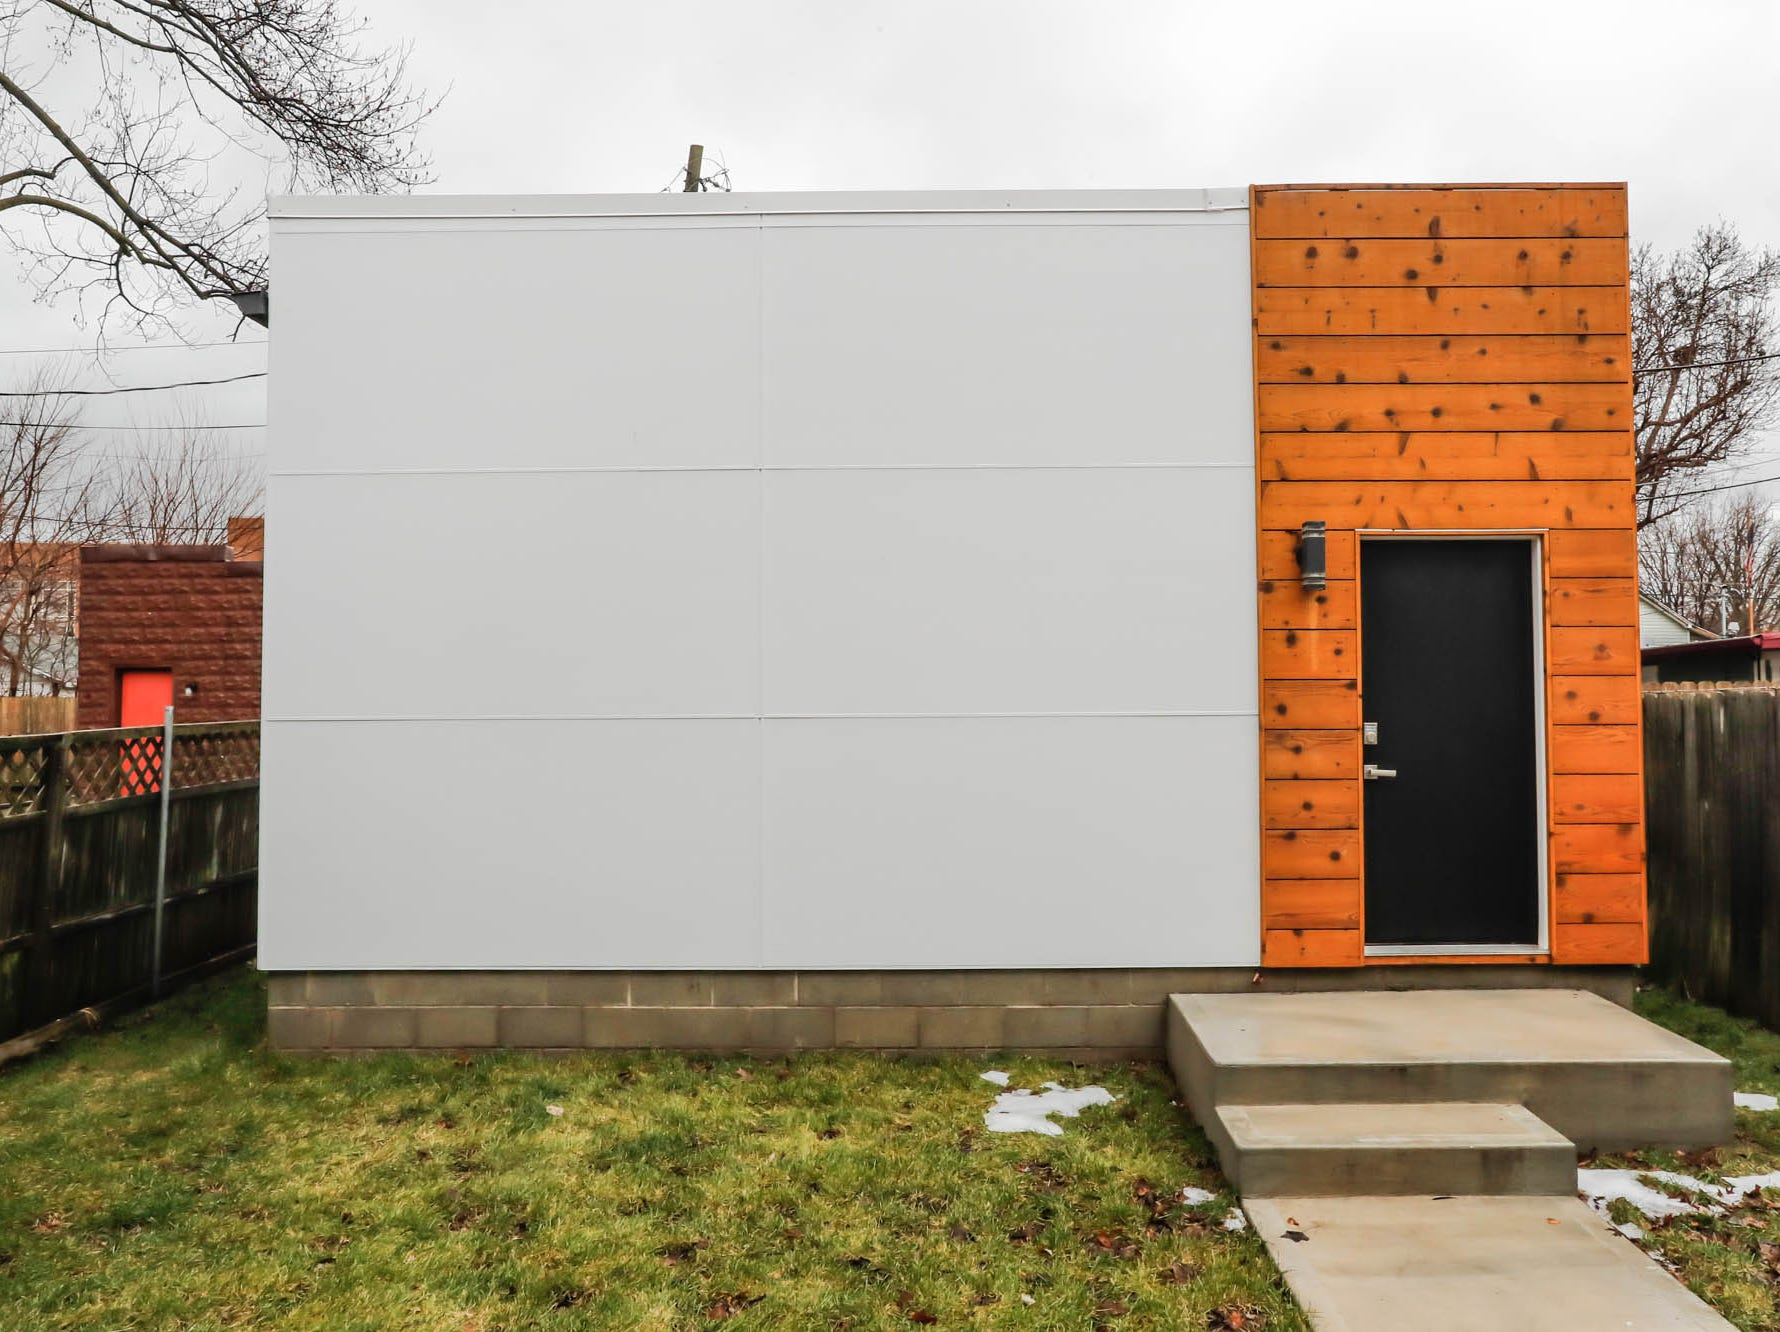 A newly built modern architectural home with unattached garage, shown here, is up for sale at 1134 Woodlawn Ave., Indianapolis, Ind., 46203, in the heart of the historic Fountain Square neighborhood on Wednesday, January 23, 2019. The three-story home, which features 2,030-square-feet and an open space concept tile and hardwood floors are priced at $479,900.